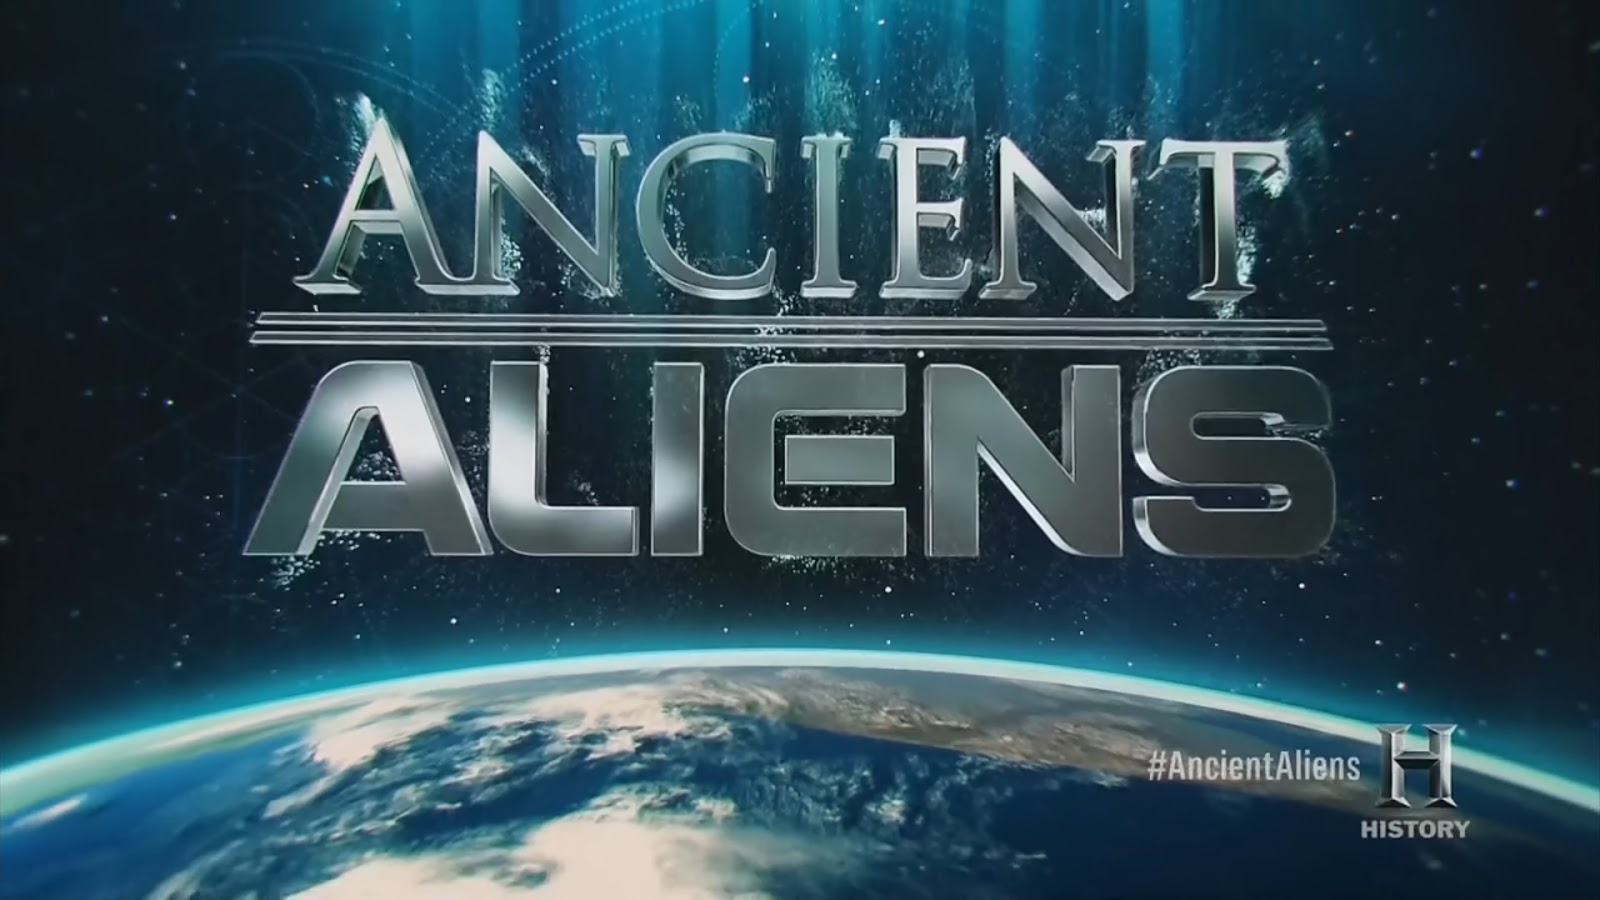 Ancient Aliens – They Came from The Pleiades episode 7 2020